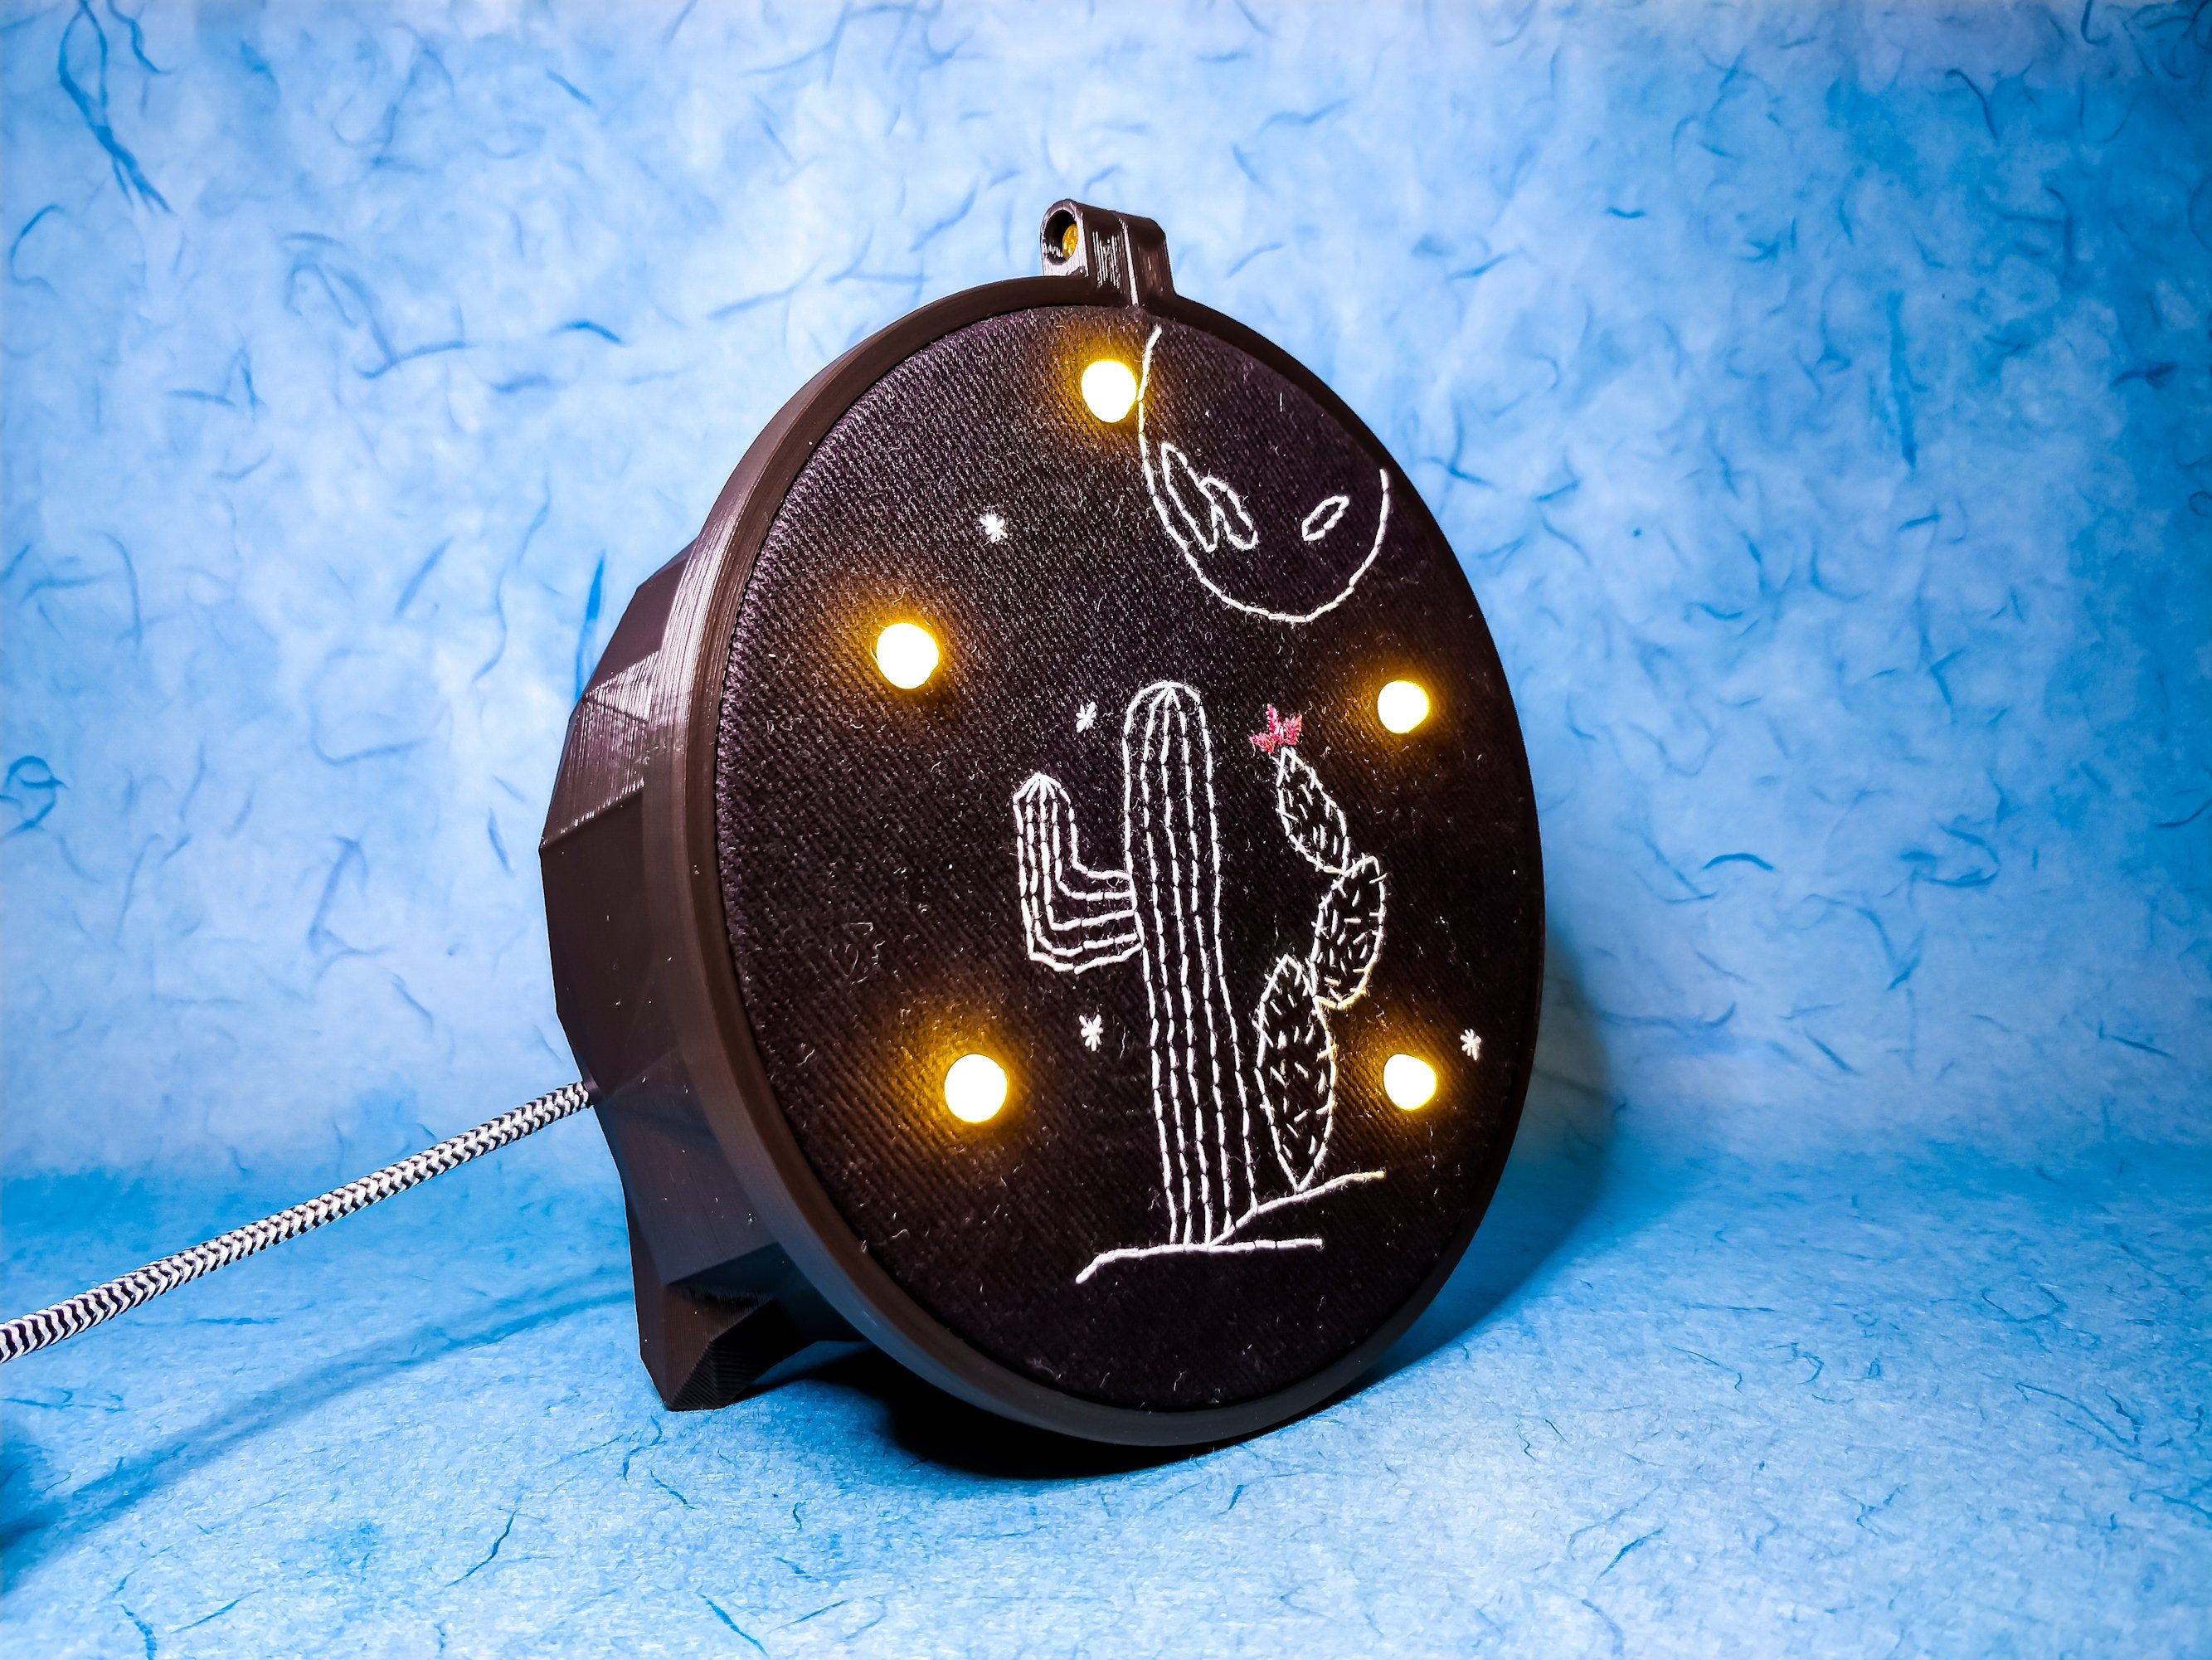 Cactus Lamp Hand Embroidered Cactus In A Full Moon Night Etsy In 2020 Embroidered Cactus Eco Gift Wrapping Experience Gifts